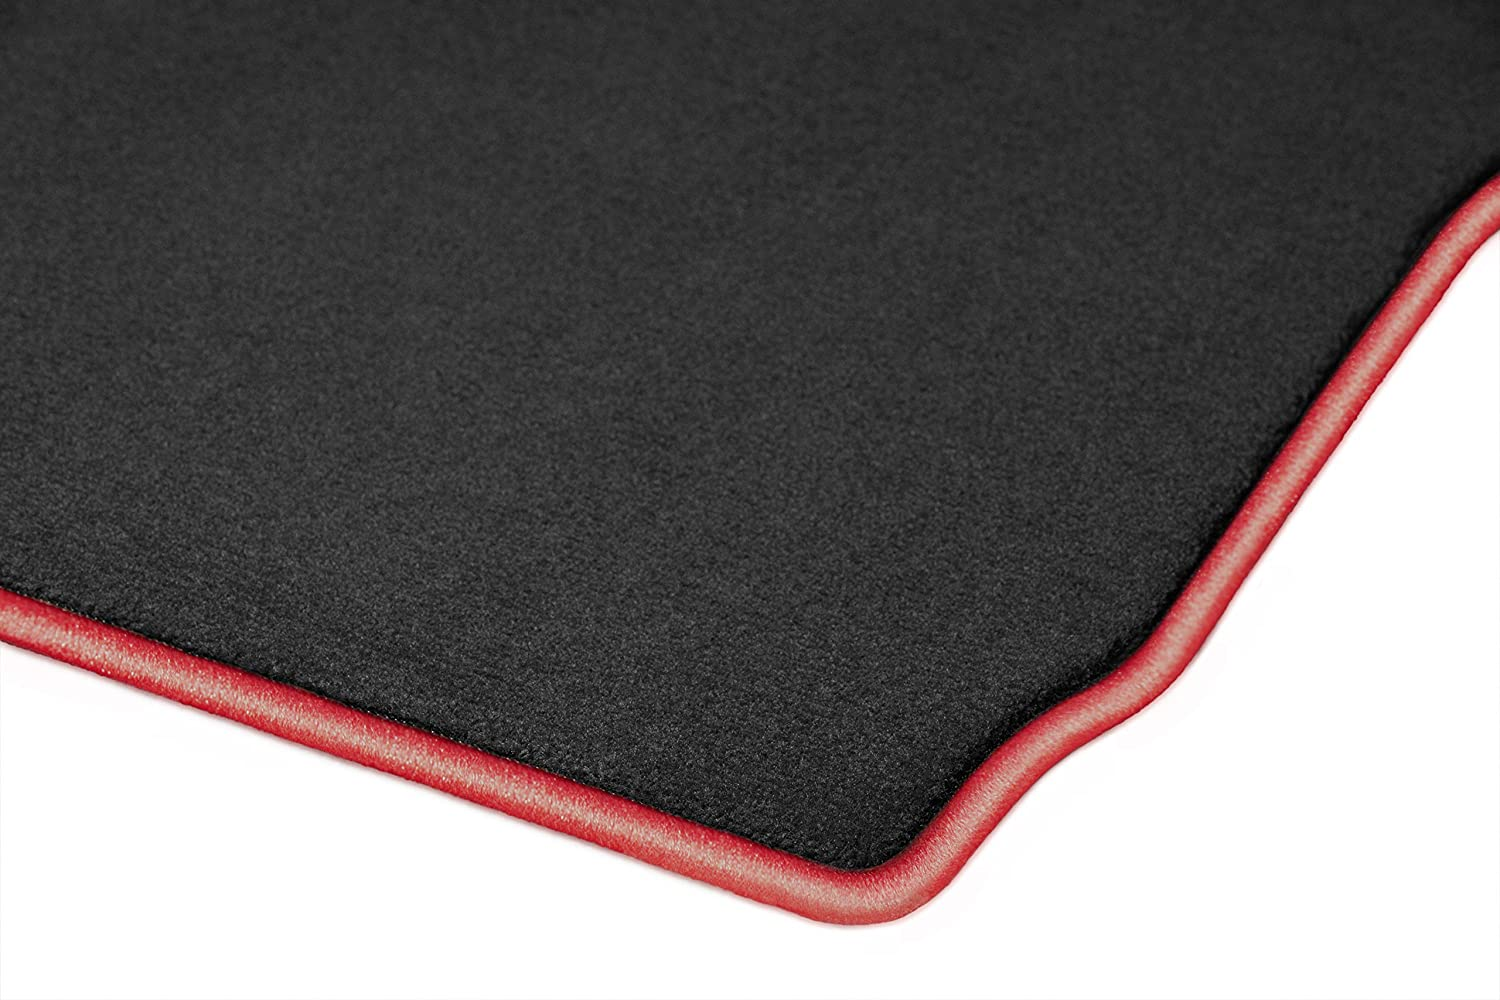 Passenger /& Rear Floor GGBAILEY D3853A-S1A-BLK/_BR Custom Fit Car Mats for 2008 2017 Mitsubishi Lancer Black with Red Edging Driver 2009 2015 2013 2011 2016 2014 2010 2012